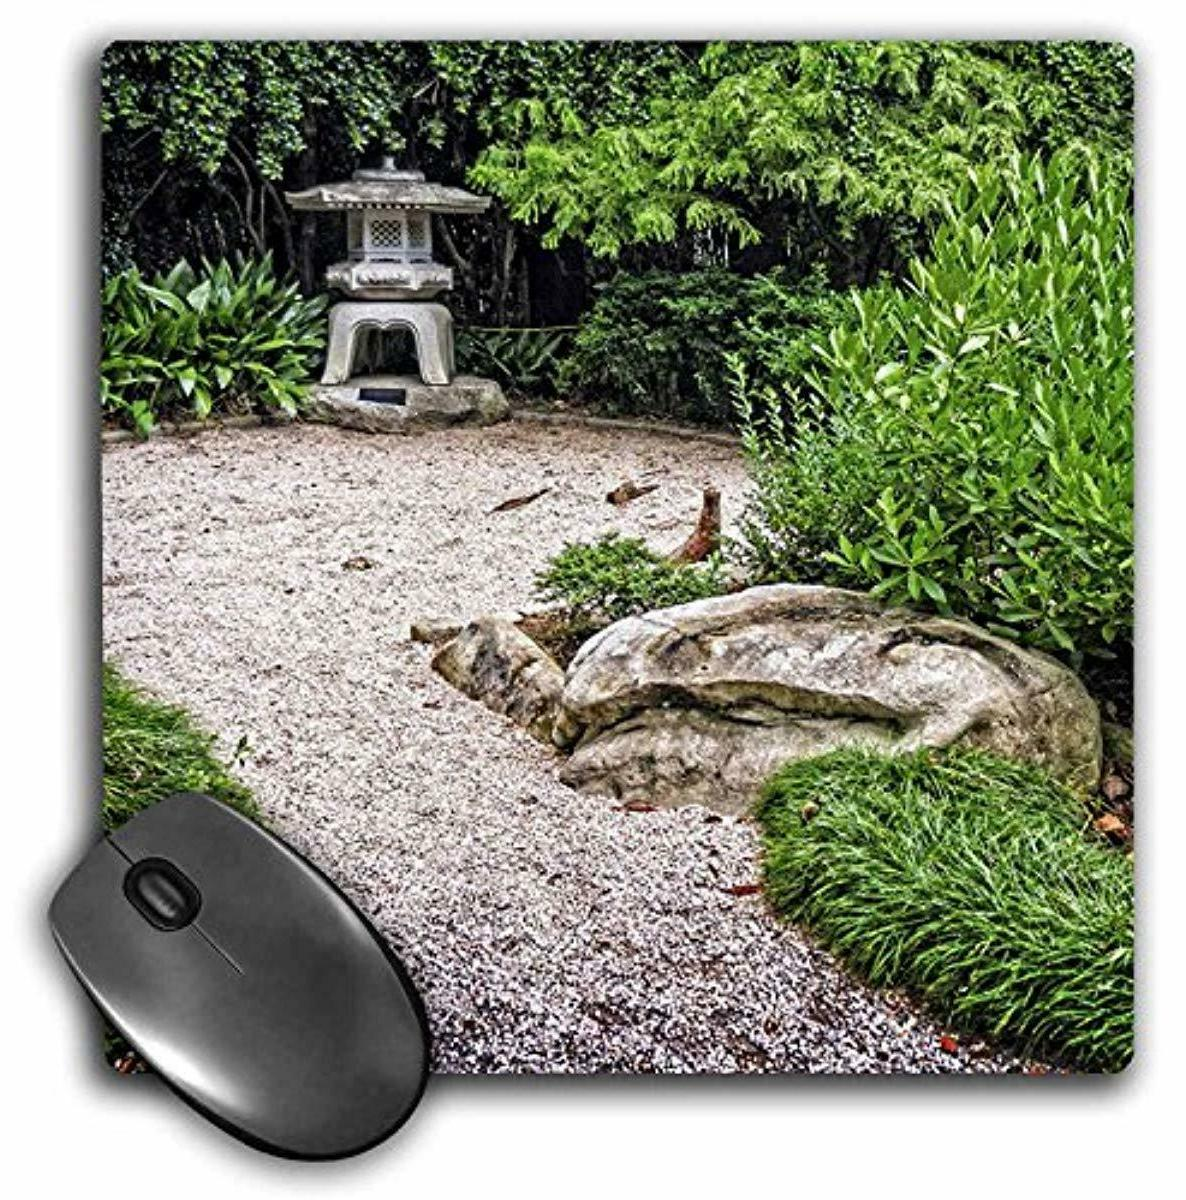 3dRose Japanese Stone Lantern, Mouse Pad, 8 by 8 inches